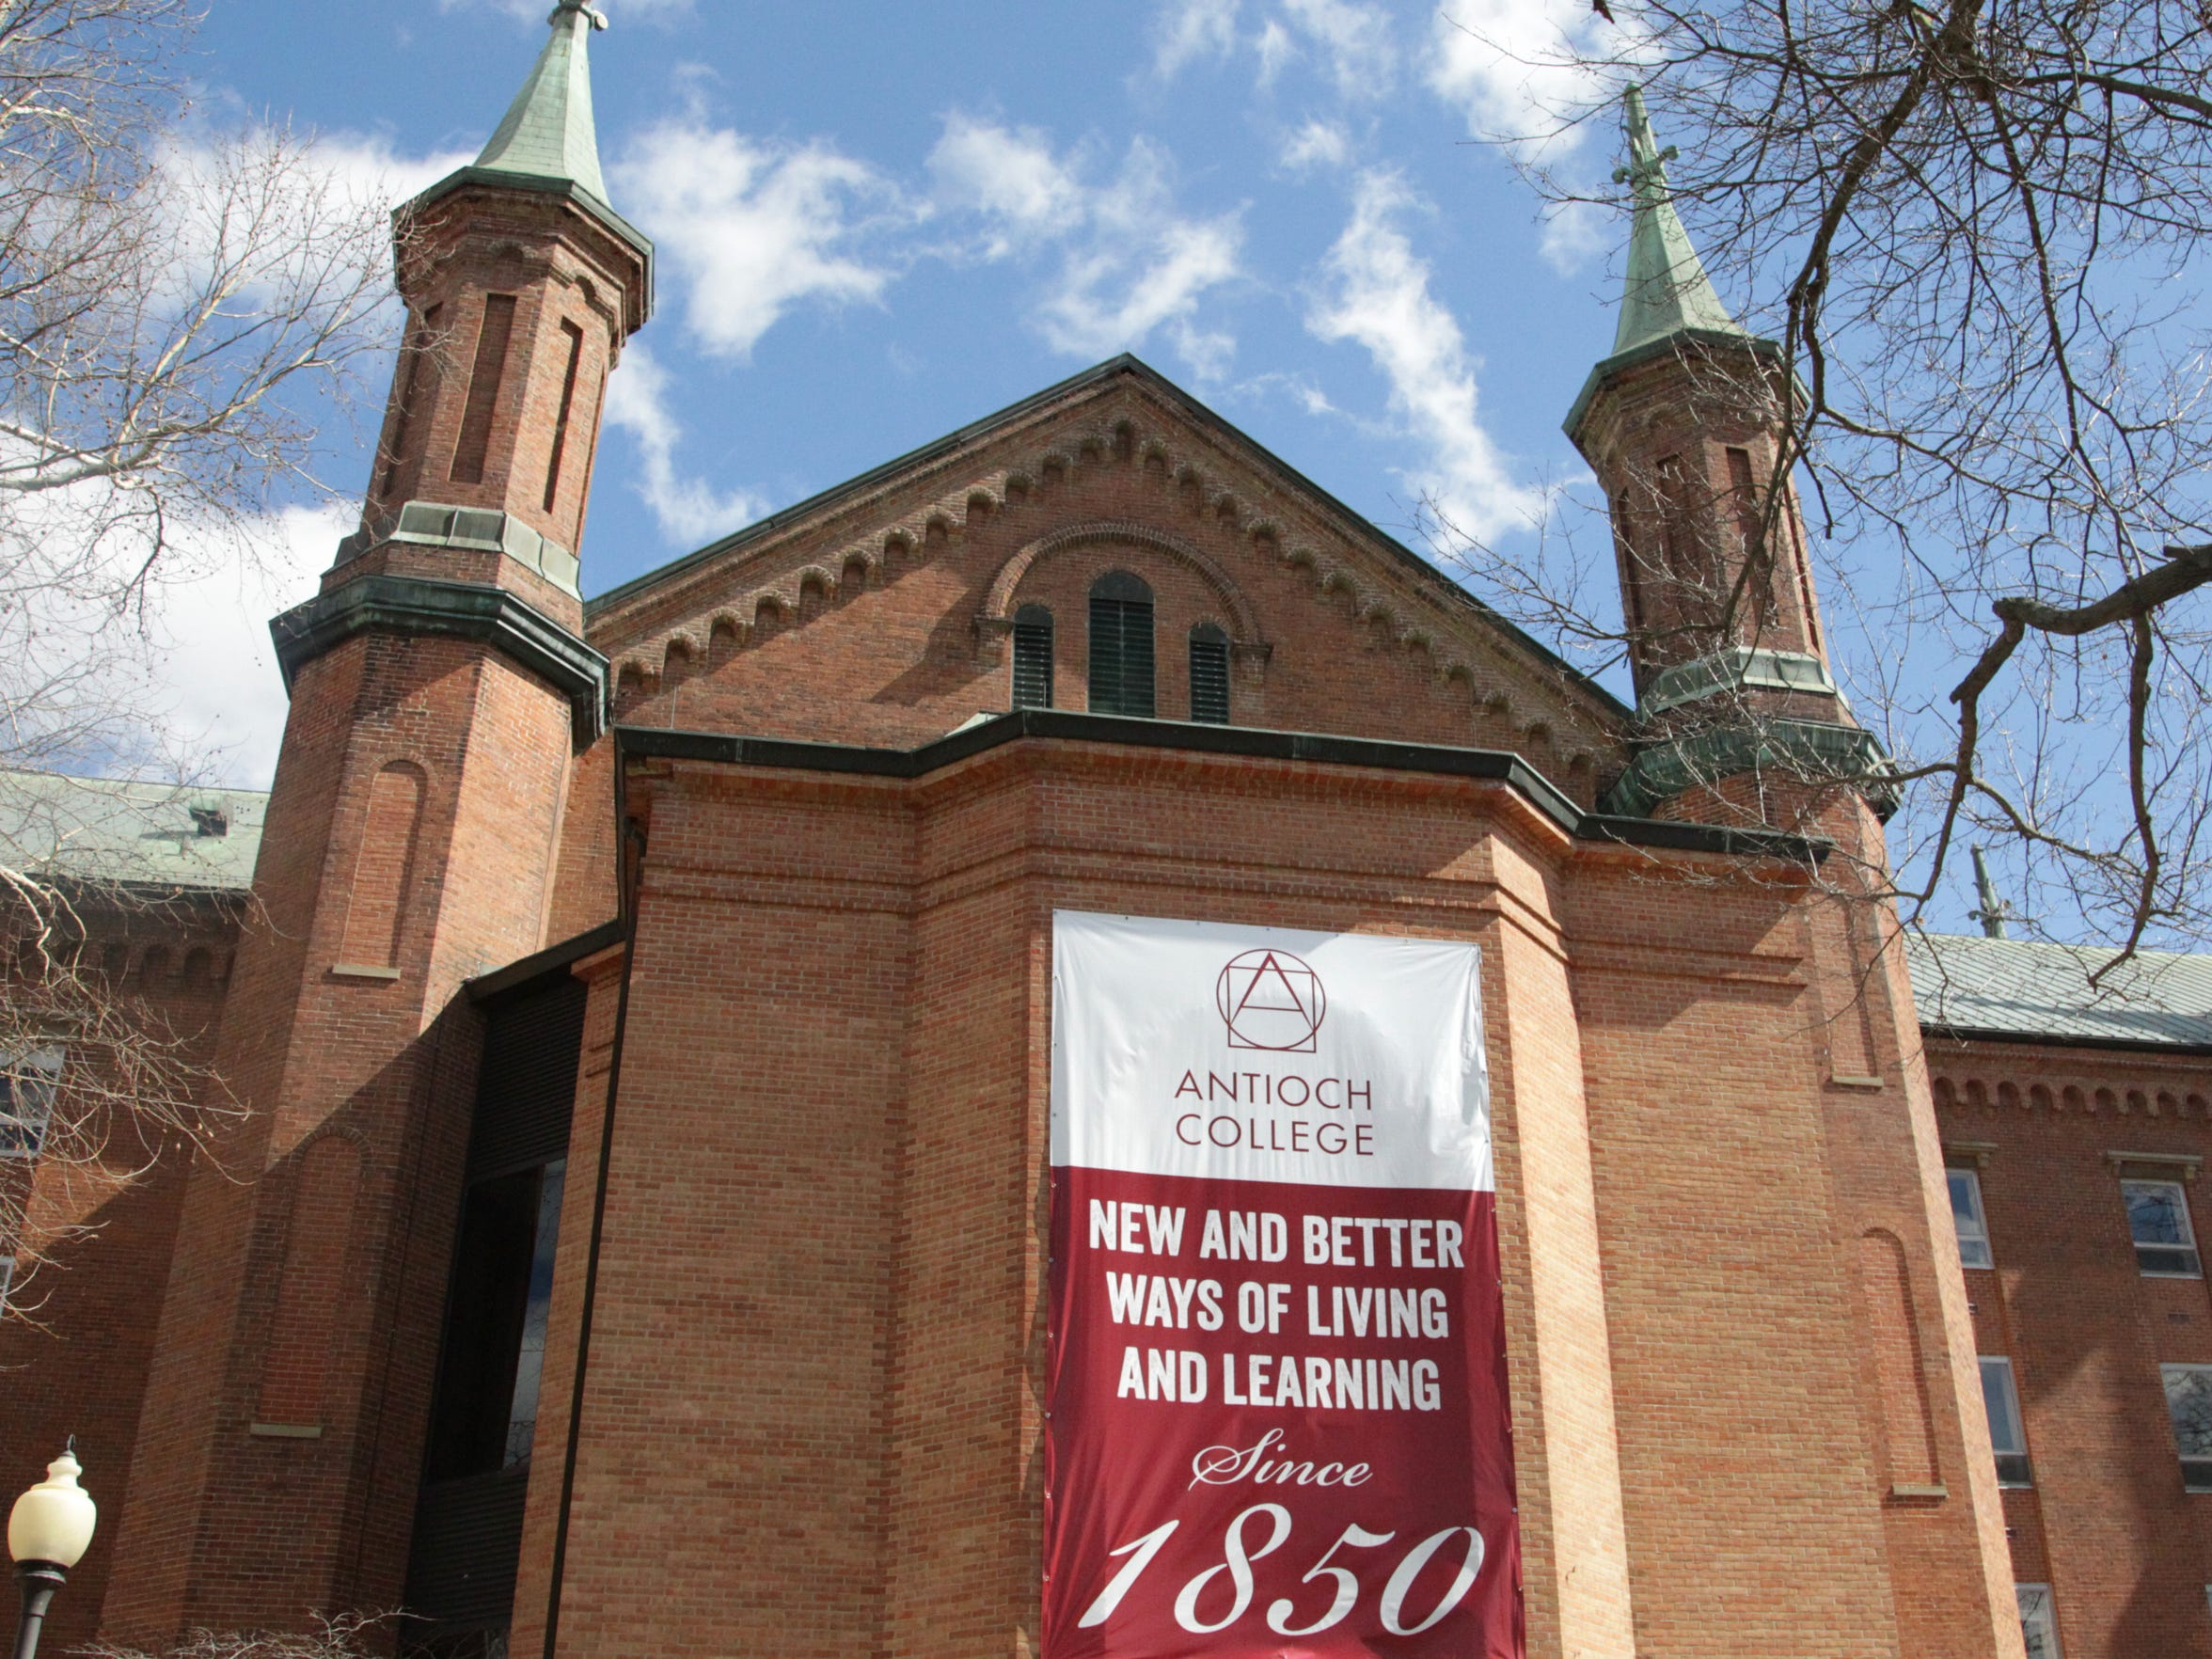 Antioch College in Yellow Springs, Ohio on March 9,